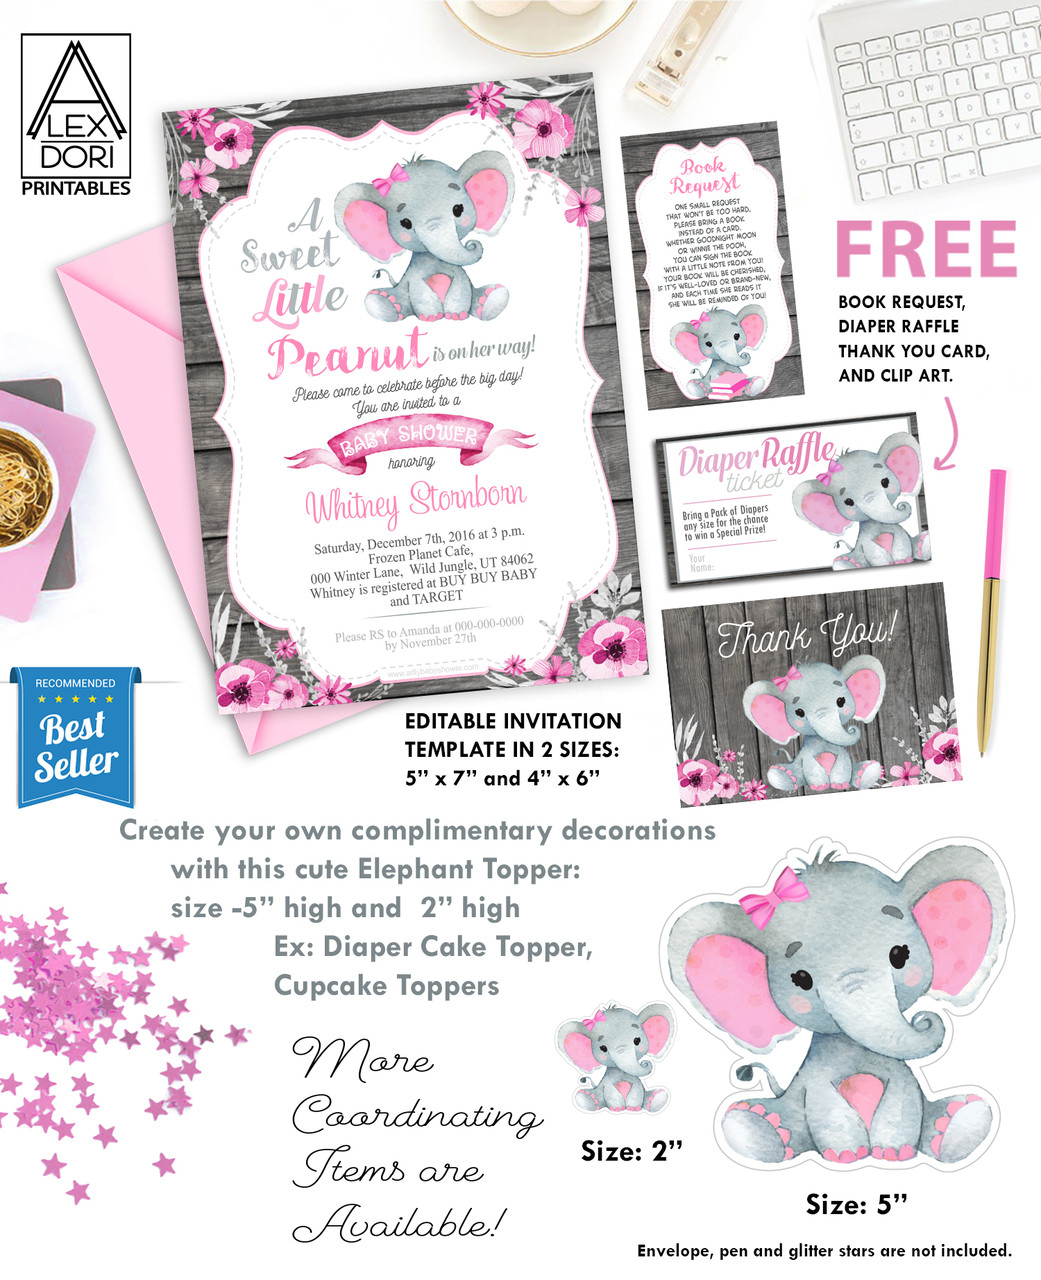 Baby Shower Invitations For Boys Design The Best For The Special Girl Elephant pink and gray Baby Shower Invitation, Wooden Background  -Printable Invitation - Peanut Invite-Girl Baby Shower-FREE Diaper Raffle -  ADLY ...